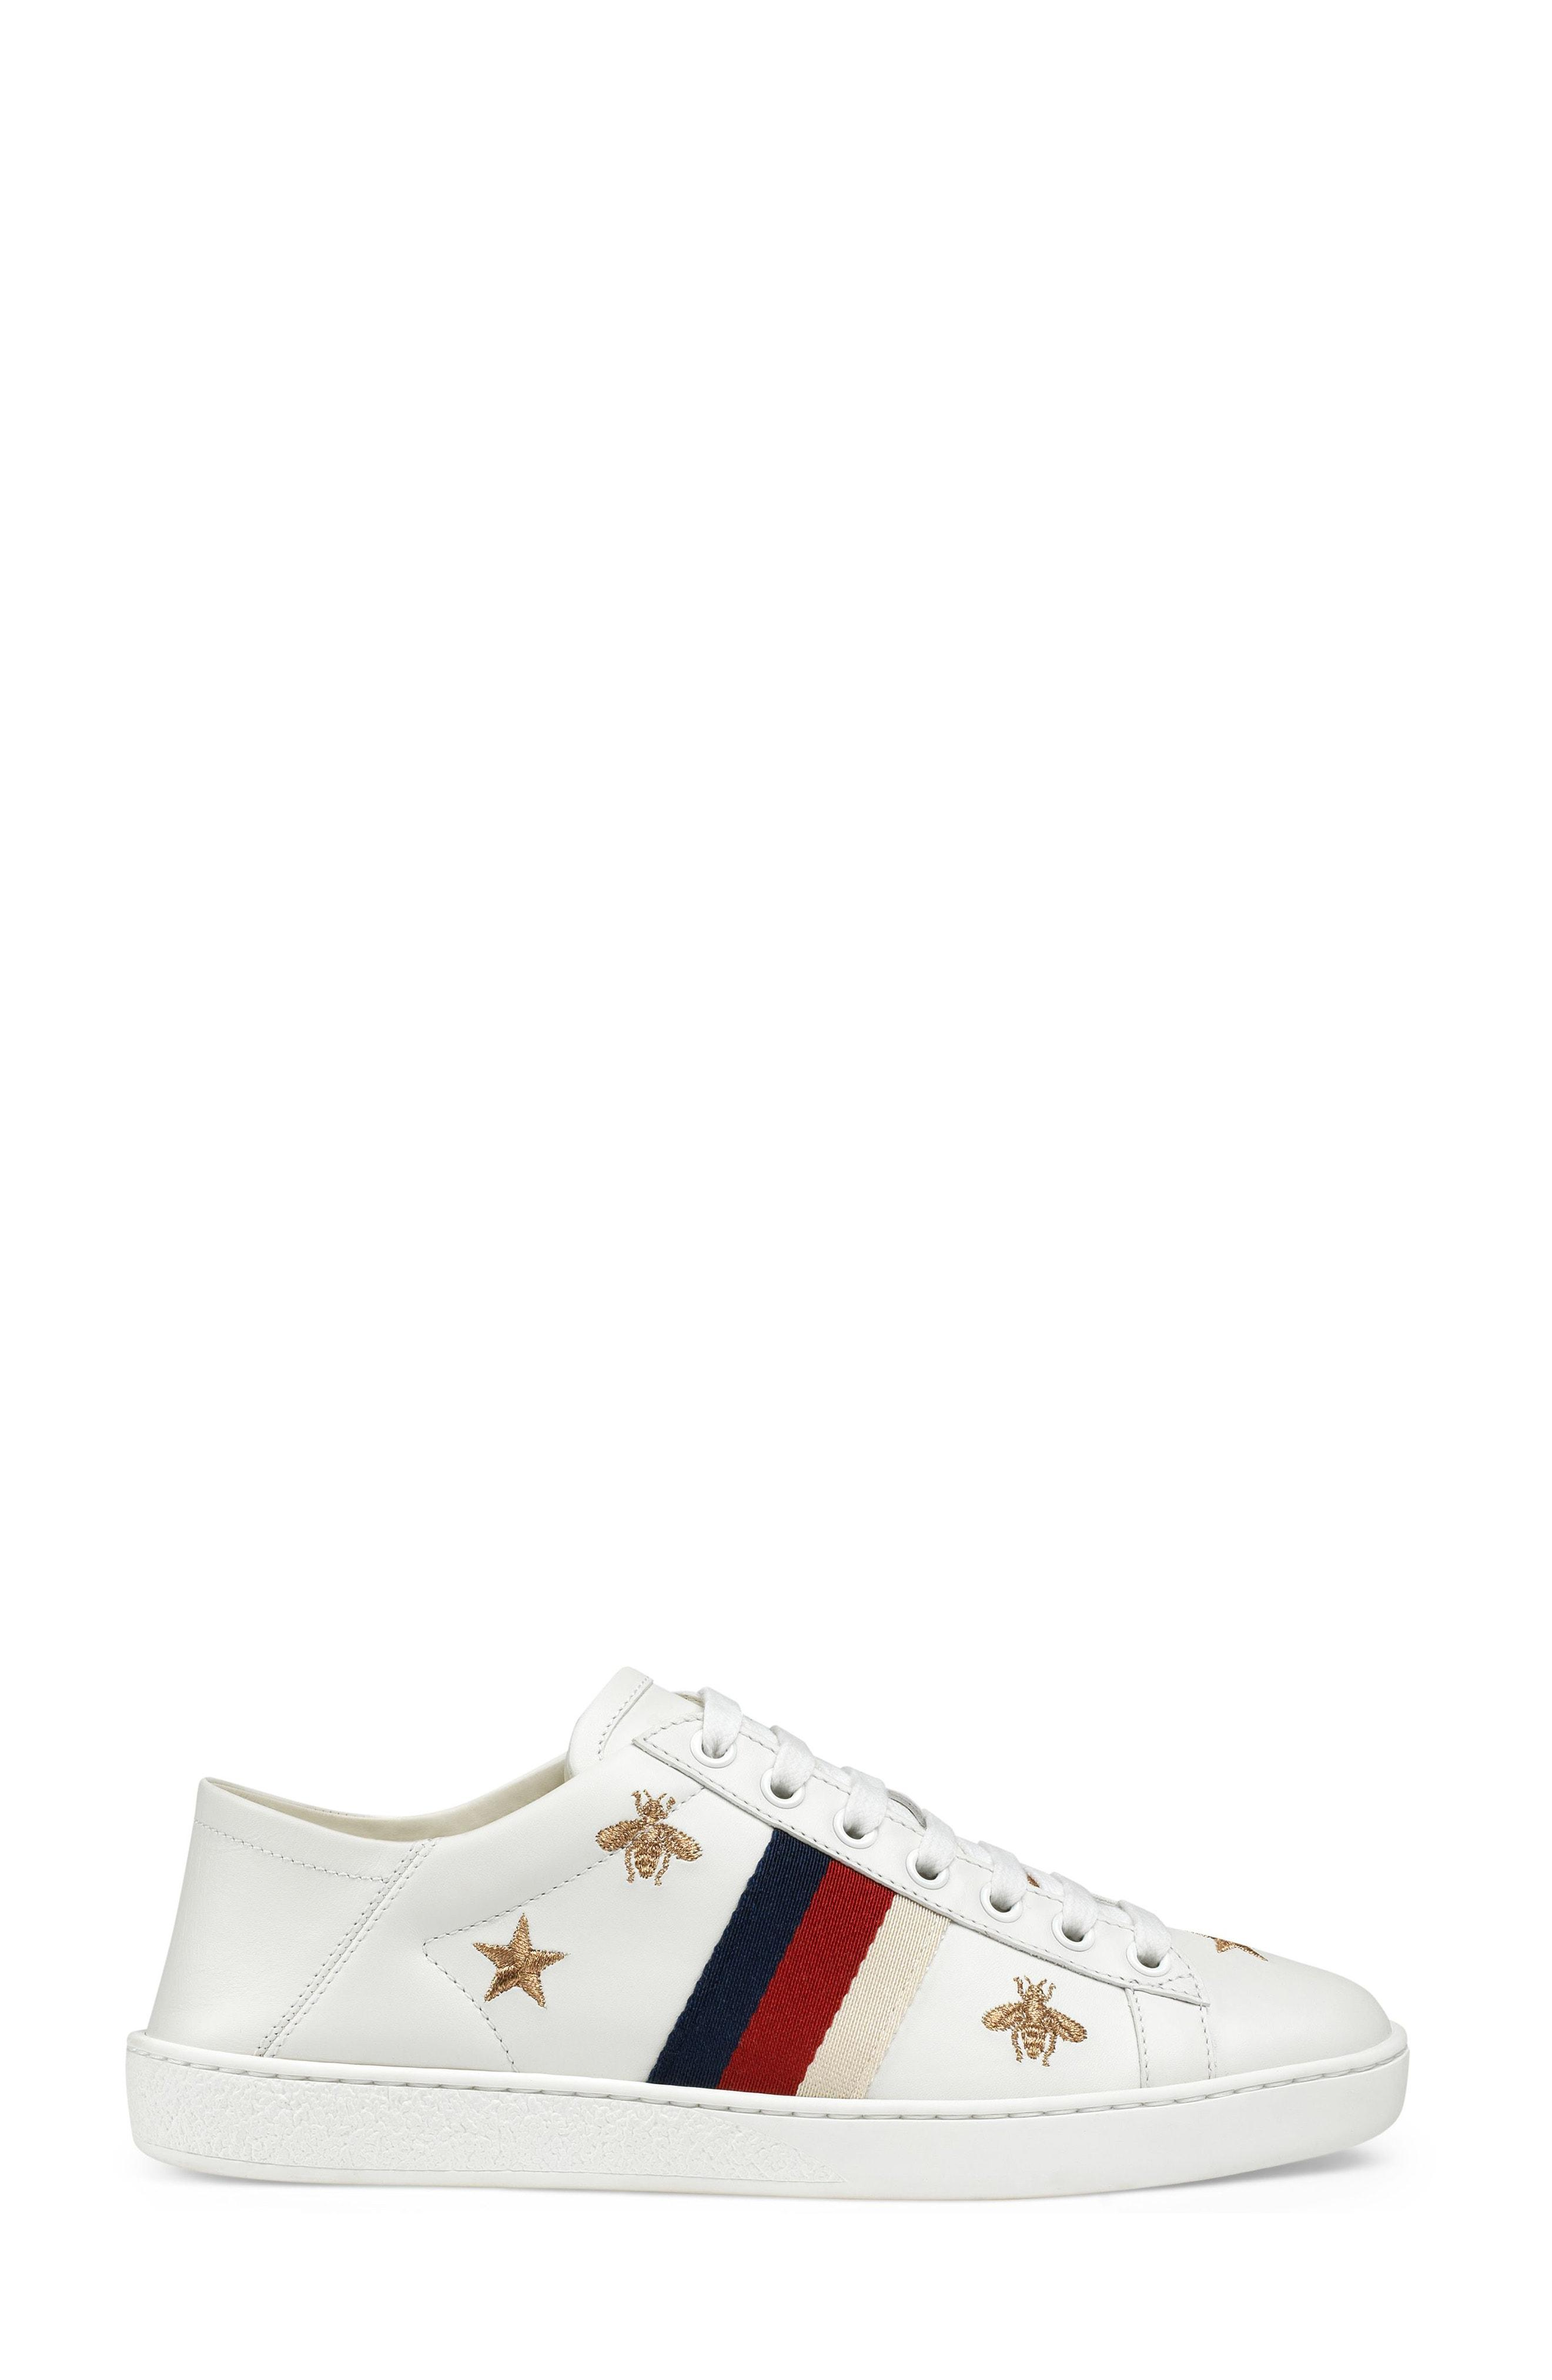 f34ab6ce9fd Gucci Ace Embroidered Leather Collapsible-Heel Sneakers In White ...